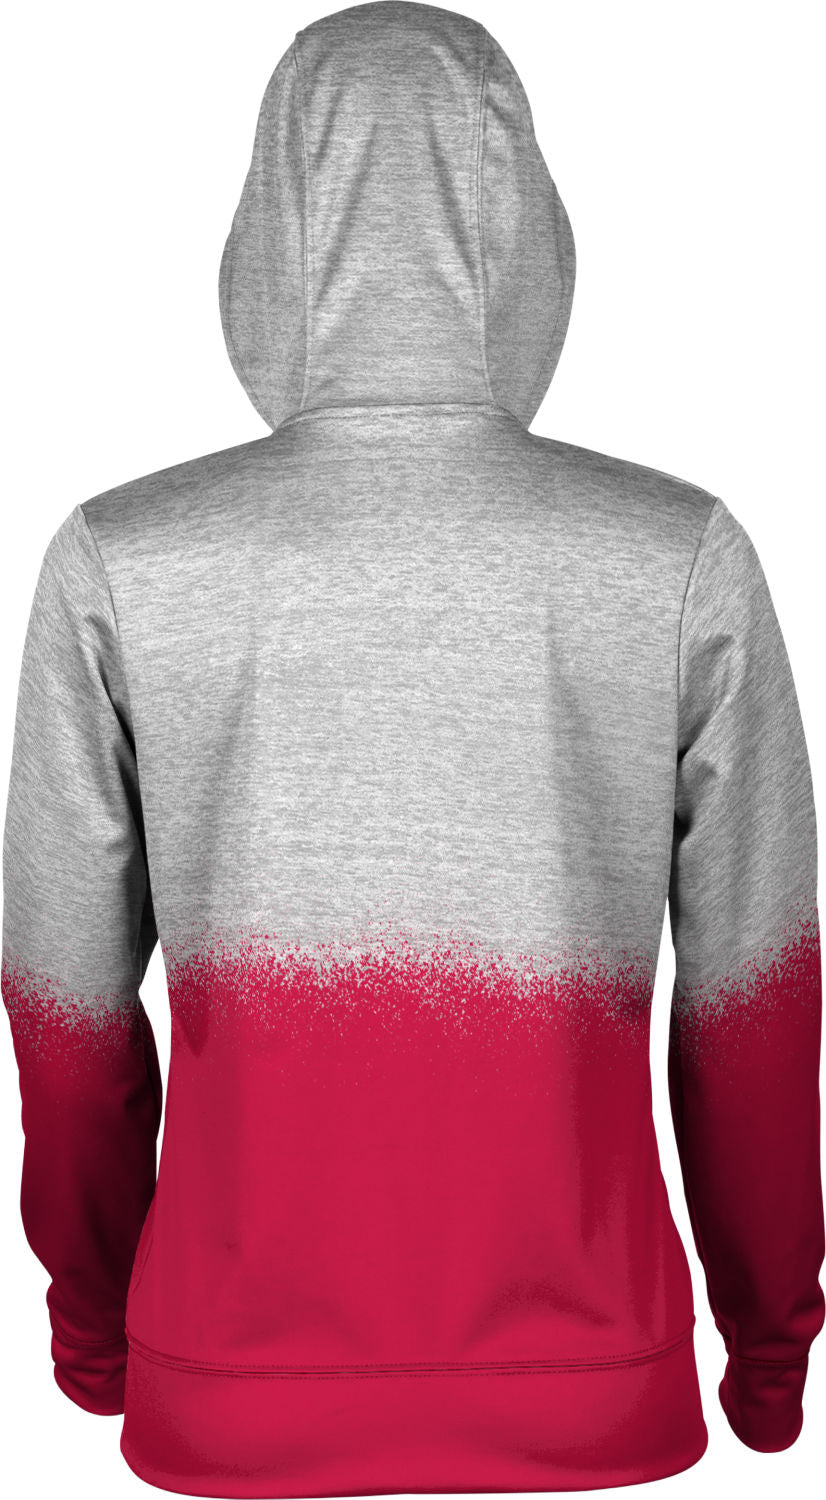 Southern Utah University: Girls' Pullover Hoodie - Spray